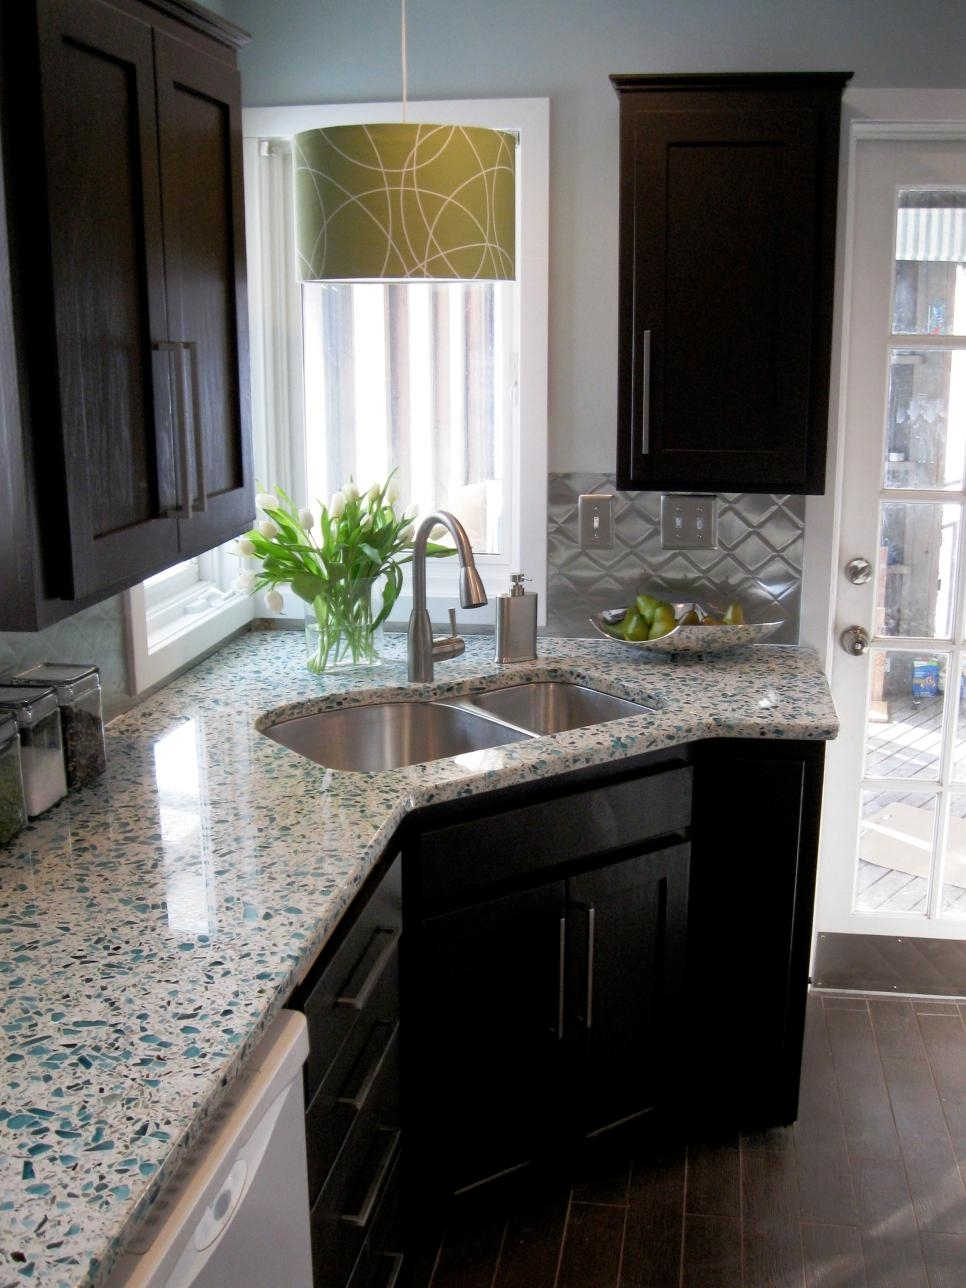 10 Fantastic Kitchen Makeover Ideas On A Budget %name 2020